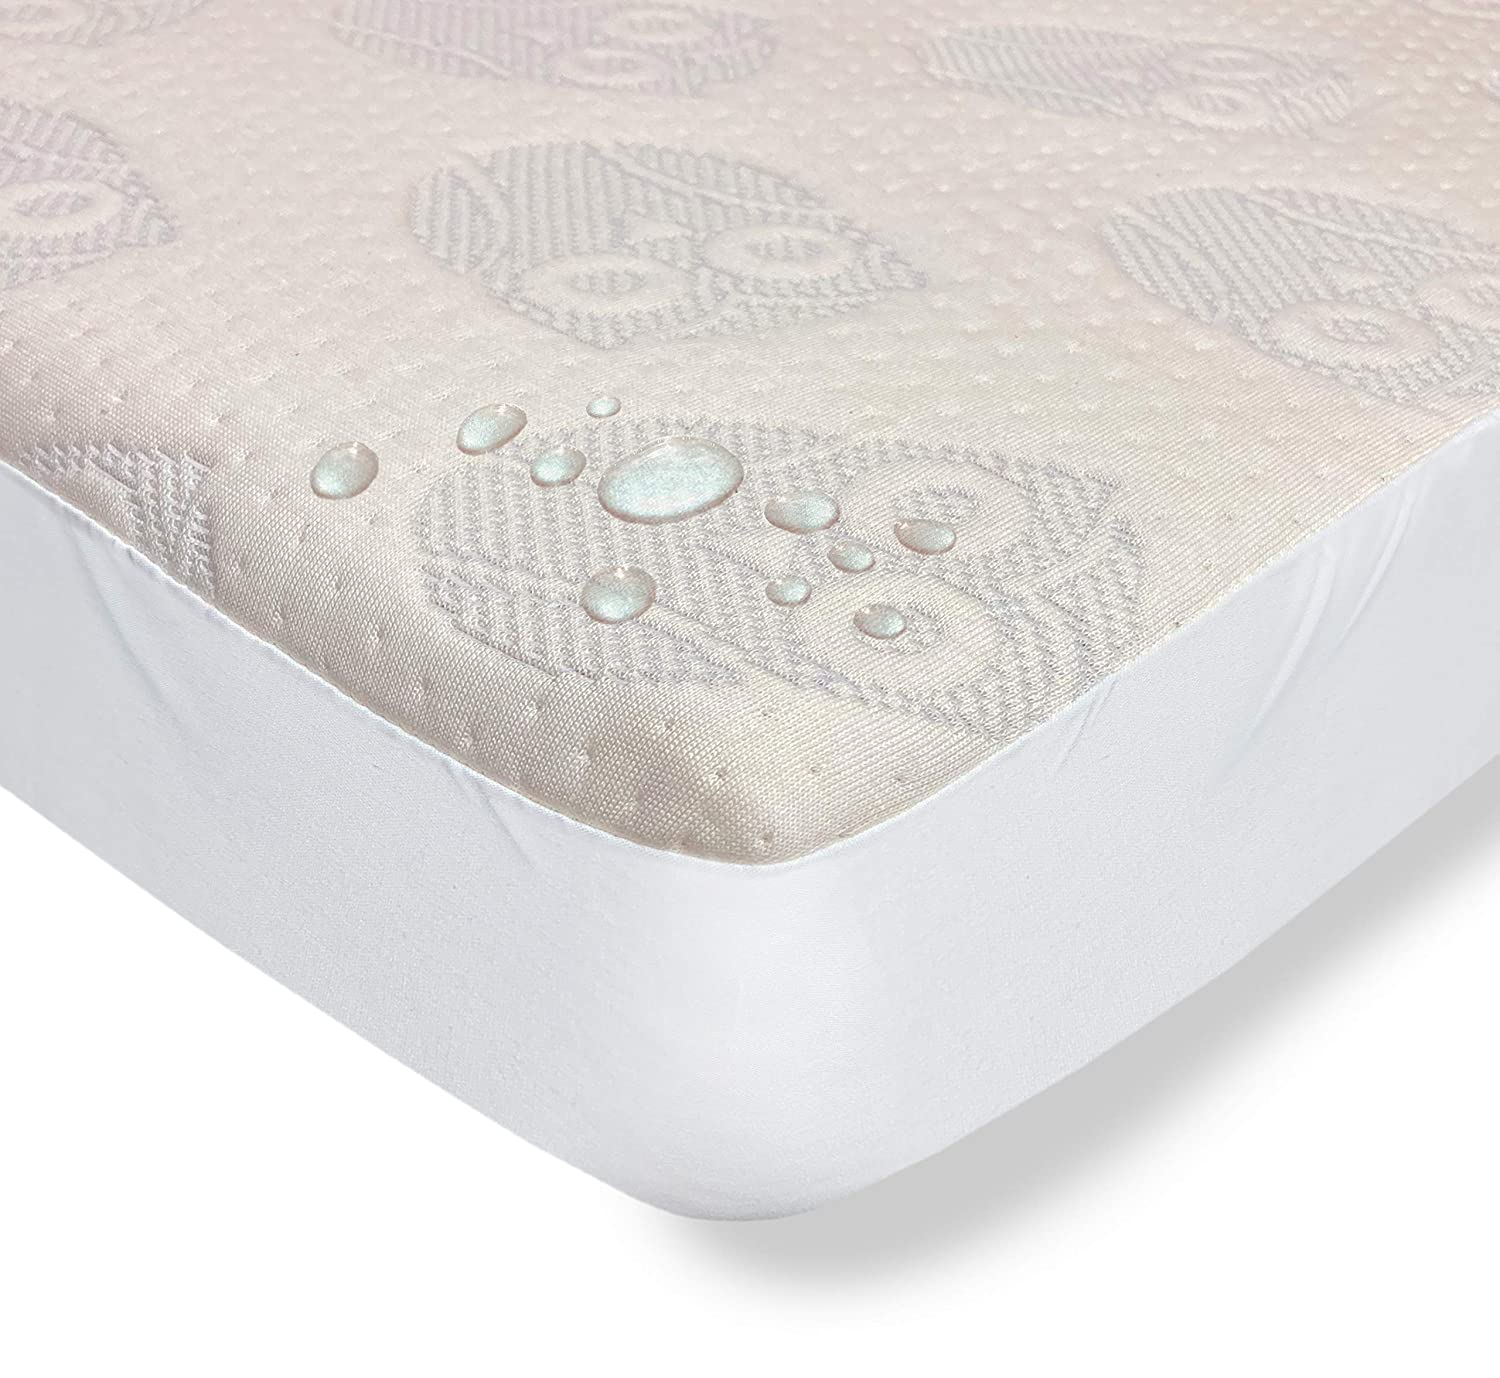 Elastic Edges Eco Cover Cute Owl Pattern Stain-Resistant Fitted Waterproof Colgate Mattress Organic Cotton Crib Mattress Cover by